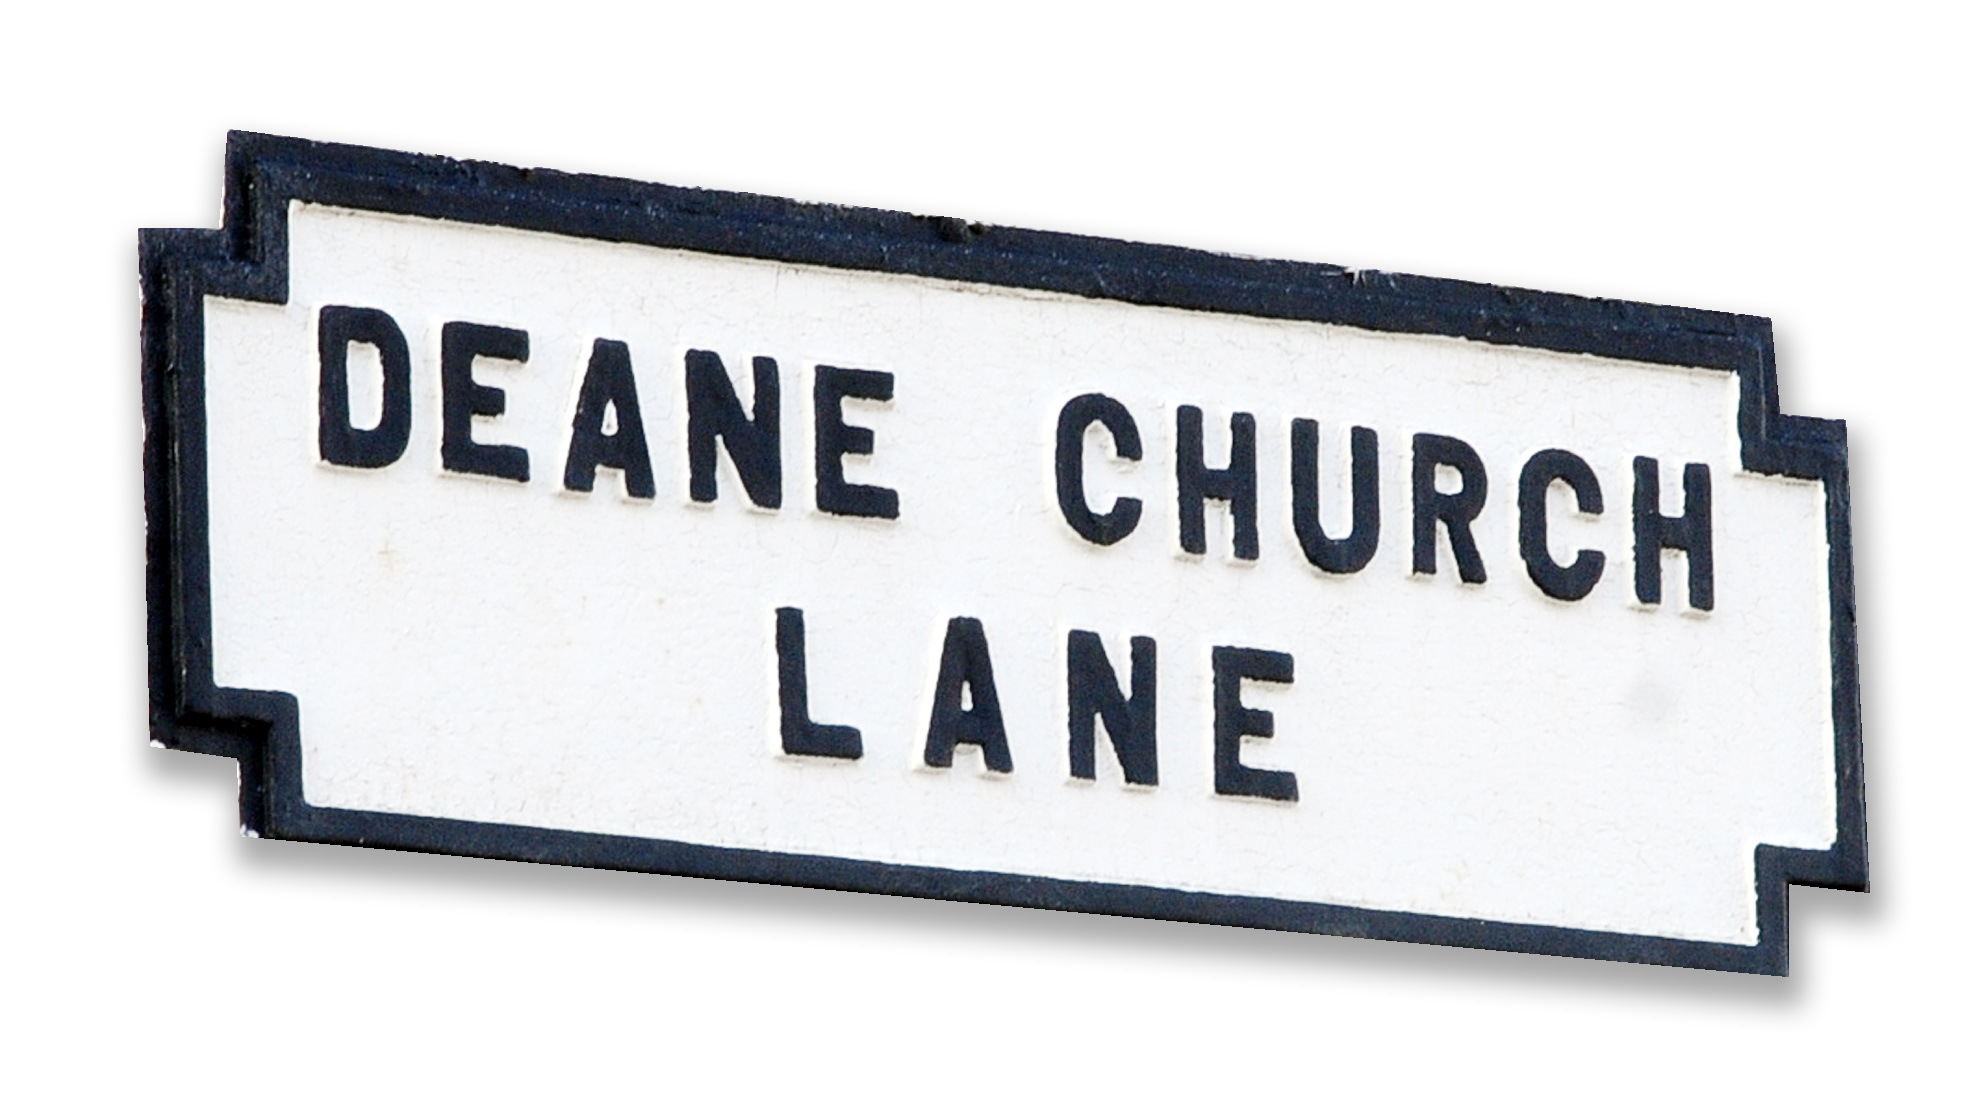 UPDATE: Fear in the streets of Deane as knife-wielding robbers strike five times in four days